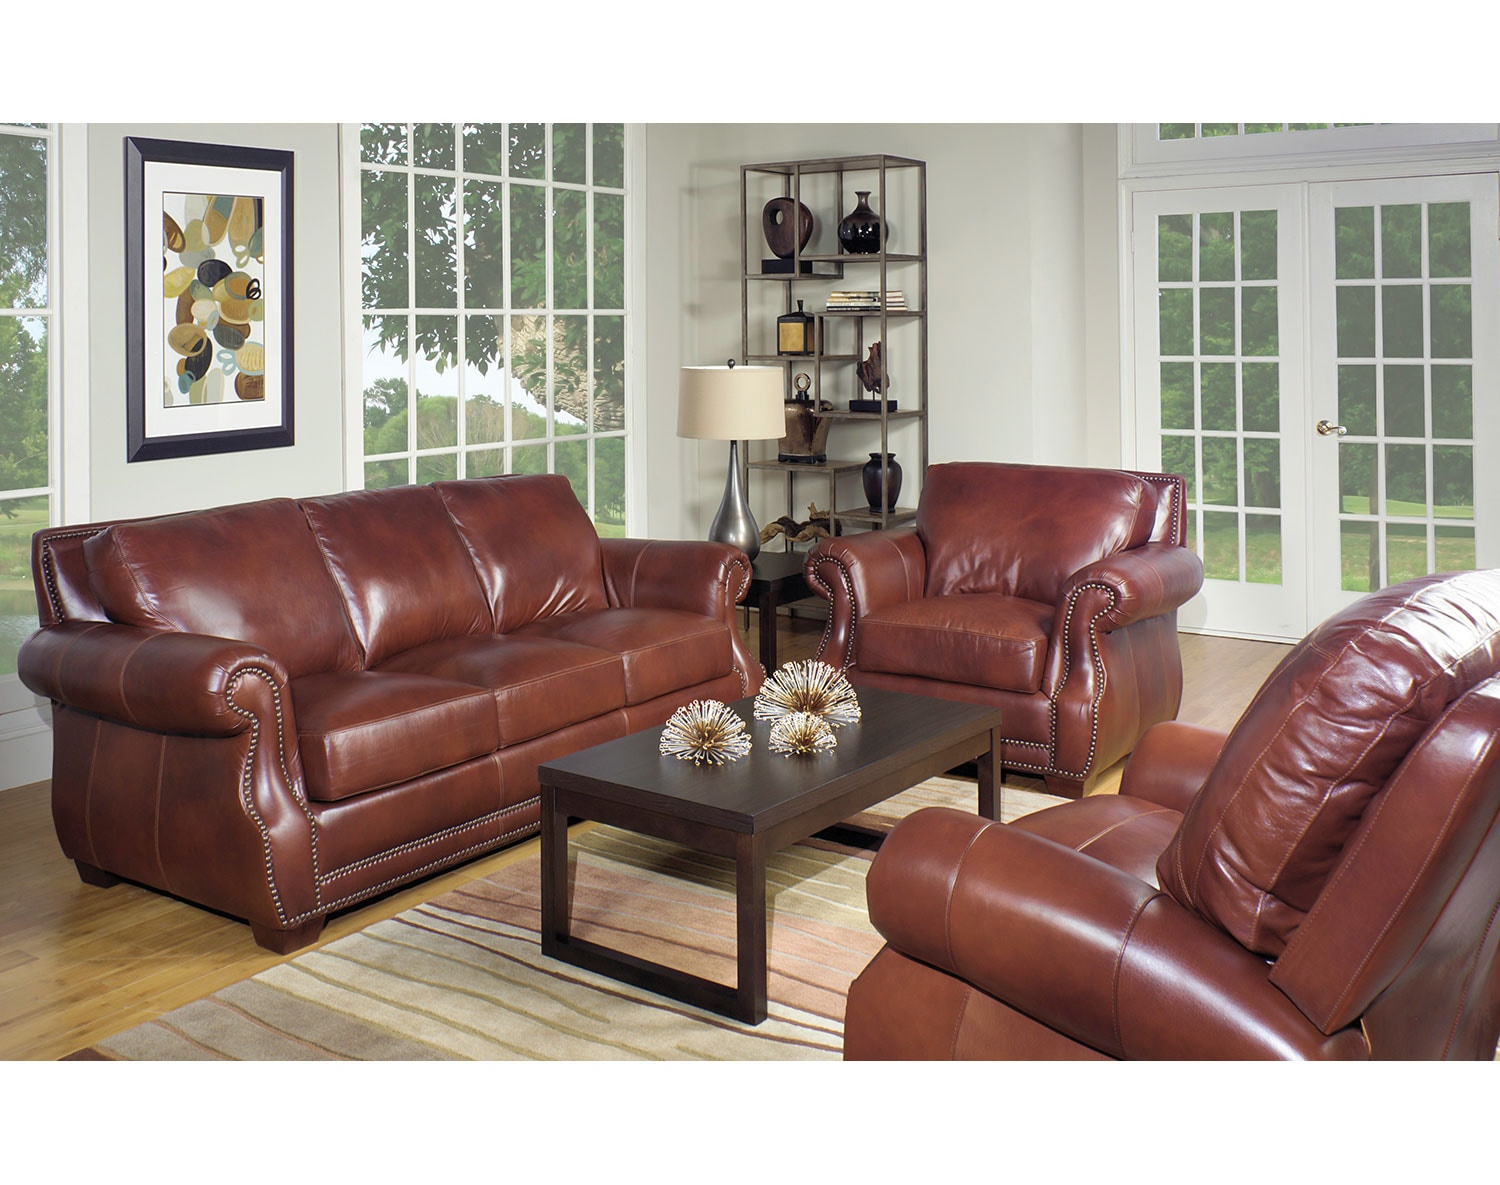 Levin Furniture Leather Sofas Rs Gold Sofa